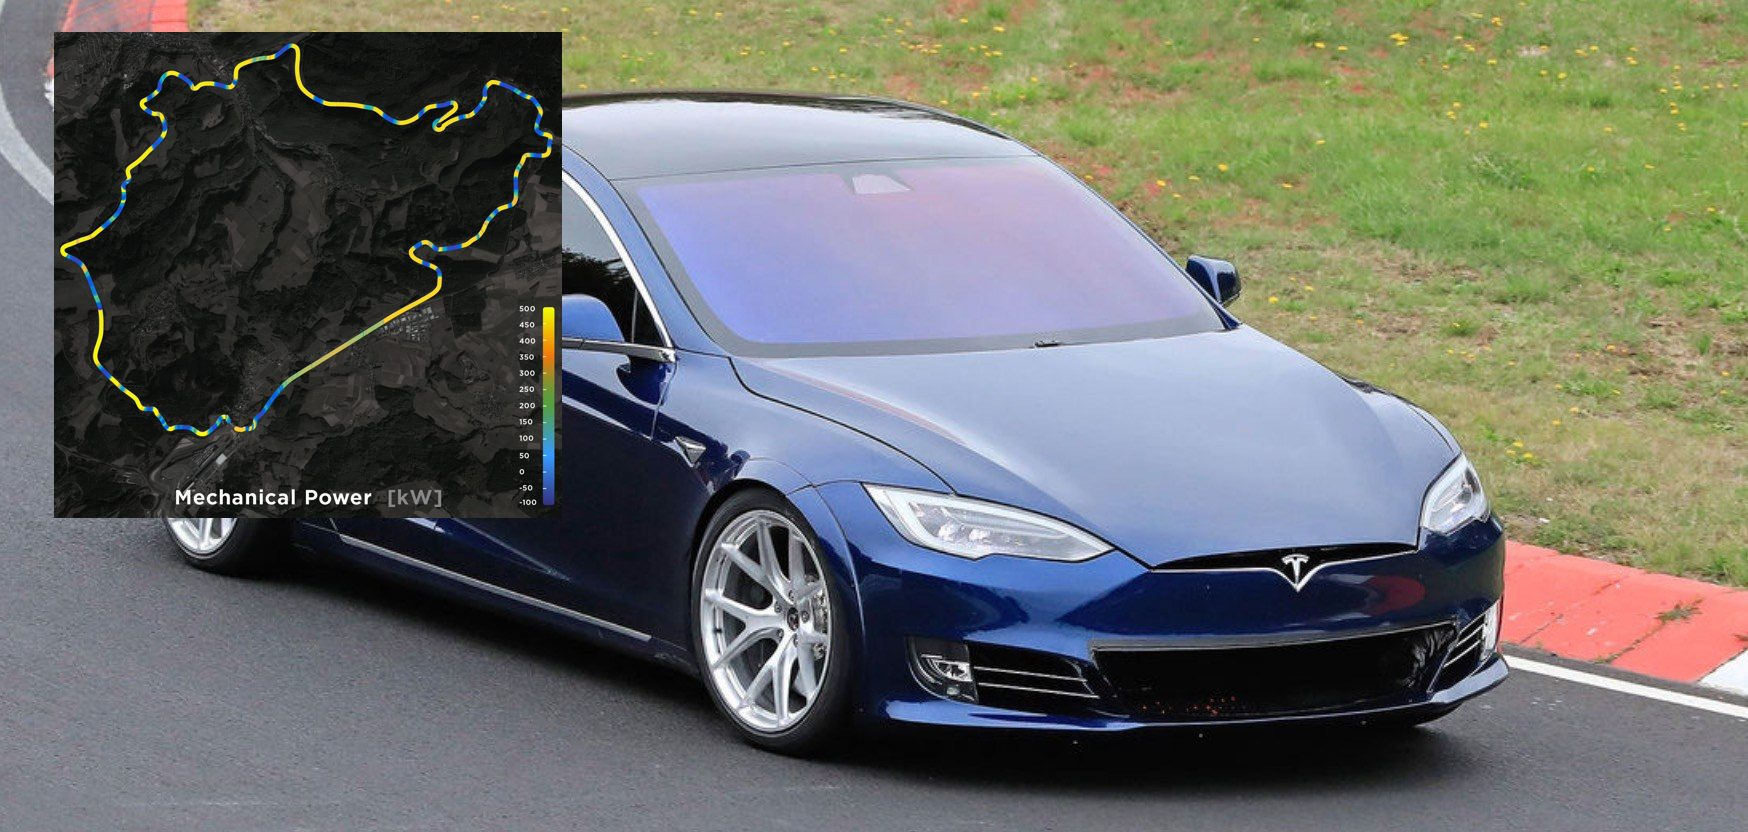 Tesla confirms Model S Plaid ~7:20 time at Nürburgring, making improvements and coming back - Electrek